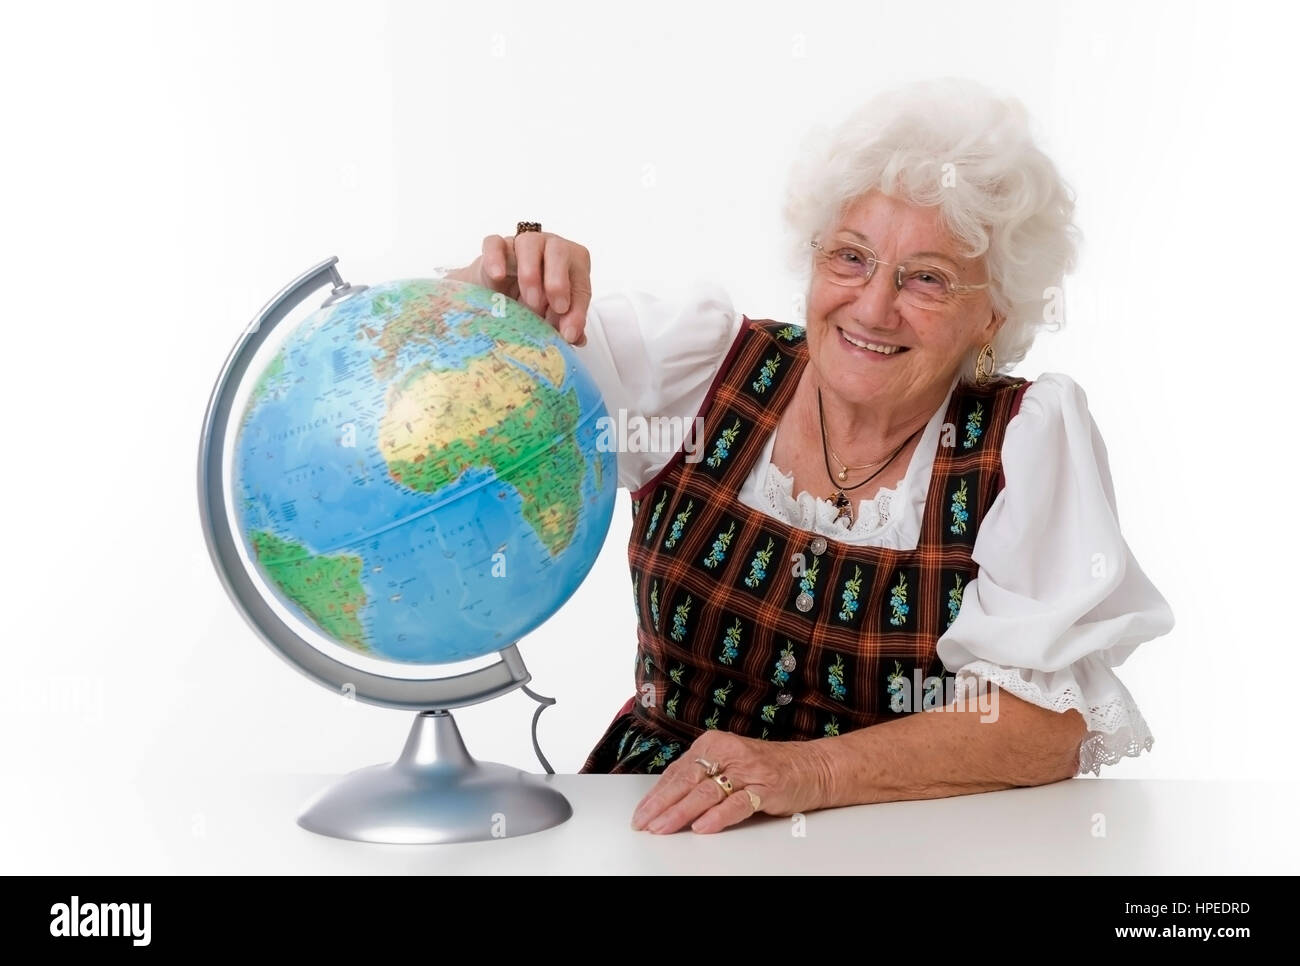 Model released , Seniorin mit Globus - older person with globe - Stock Image